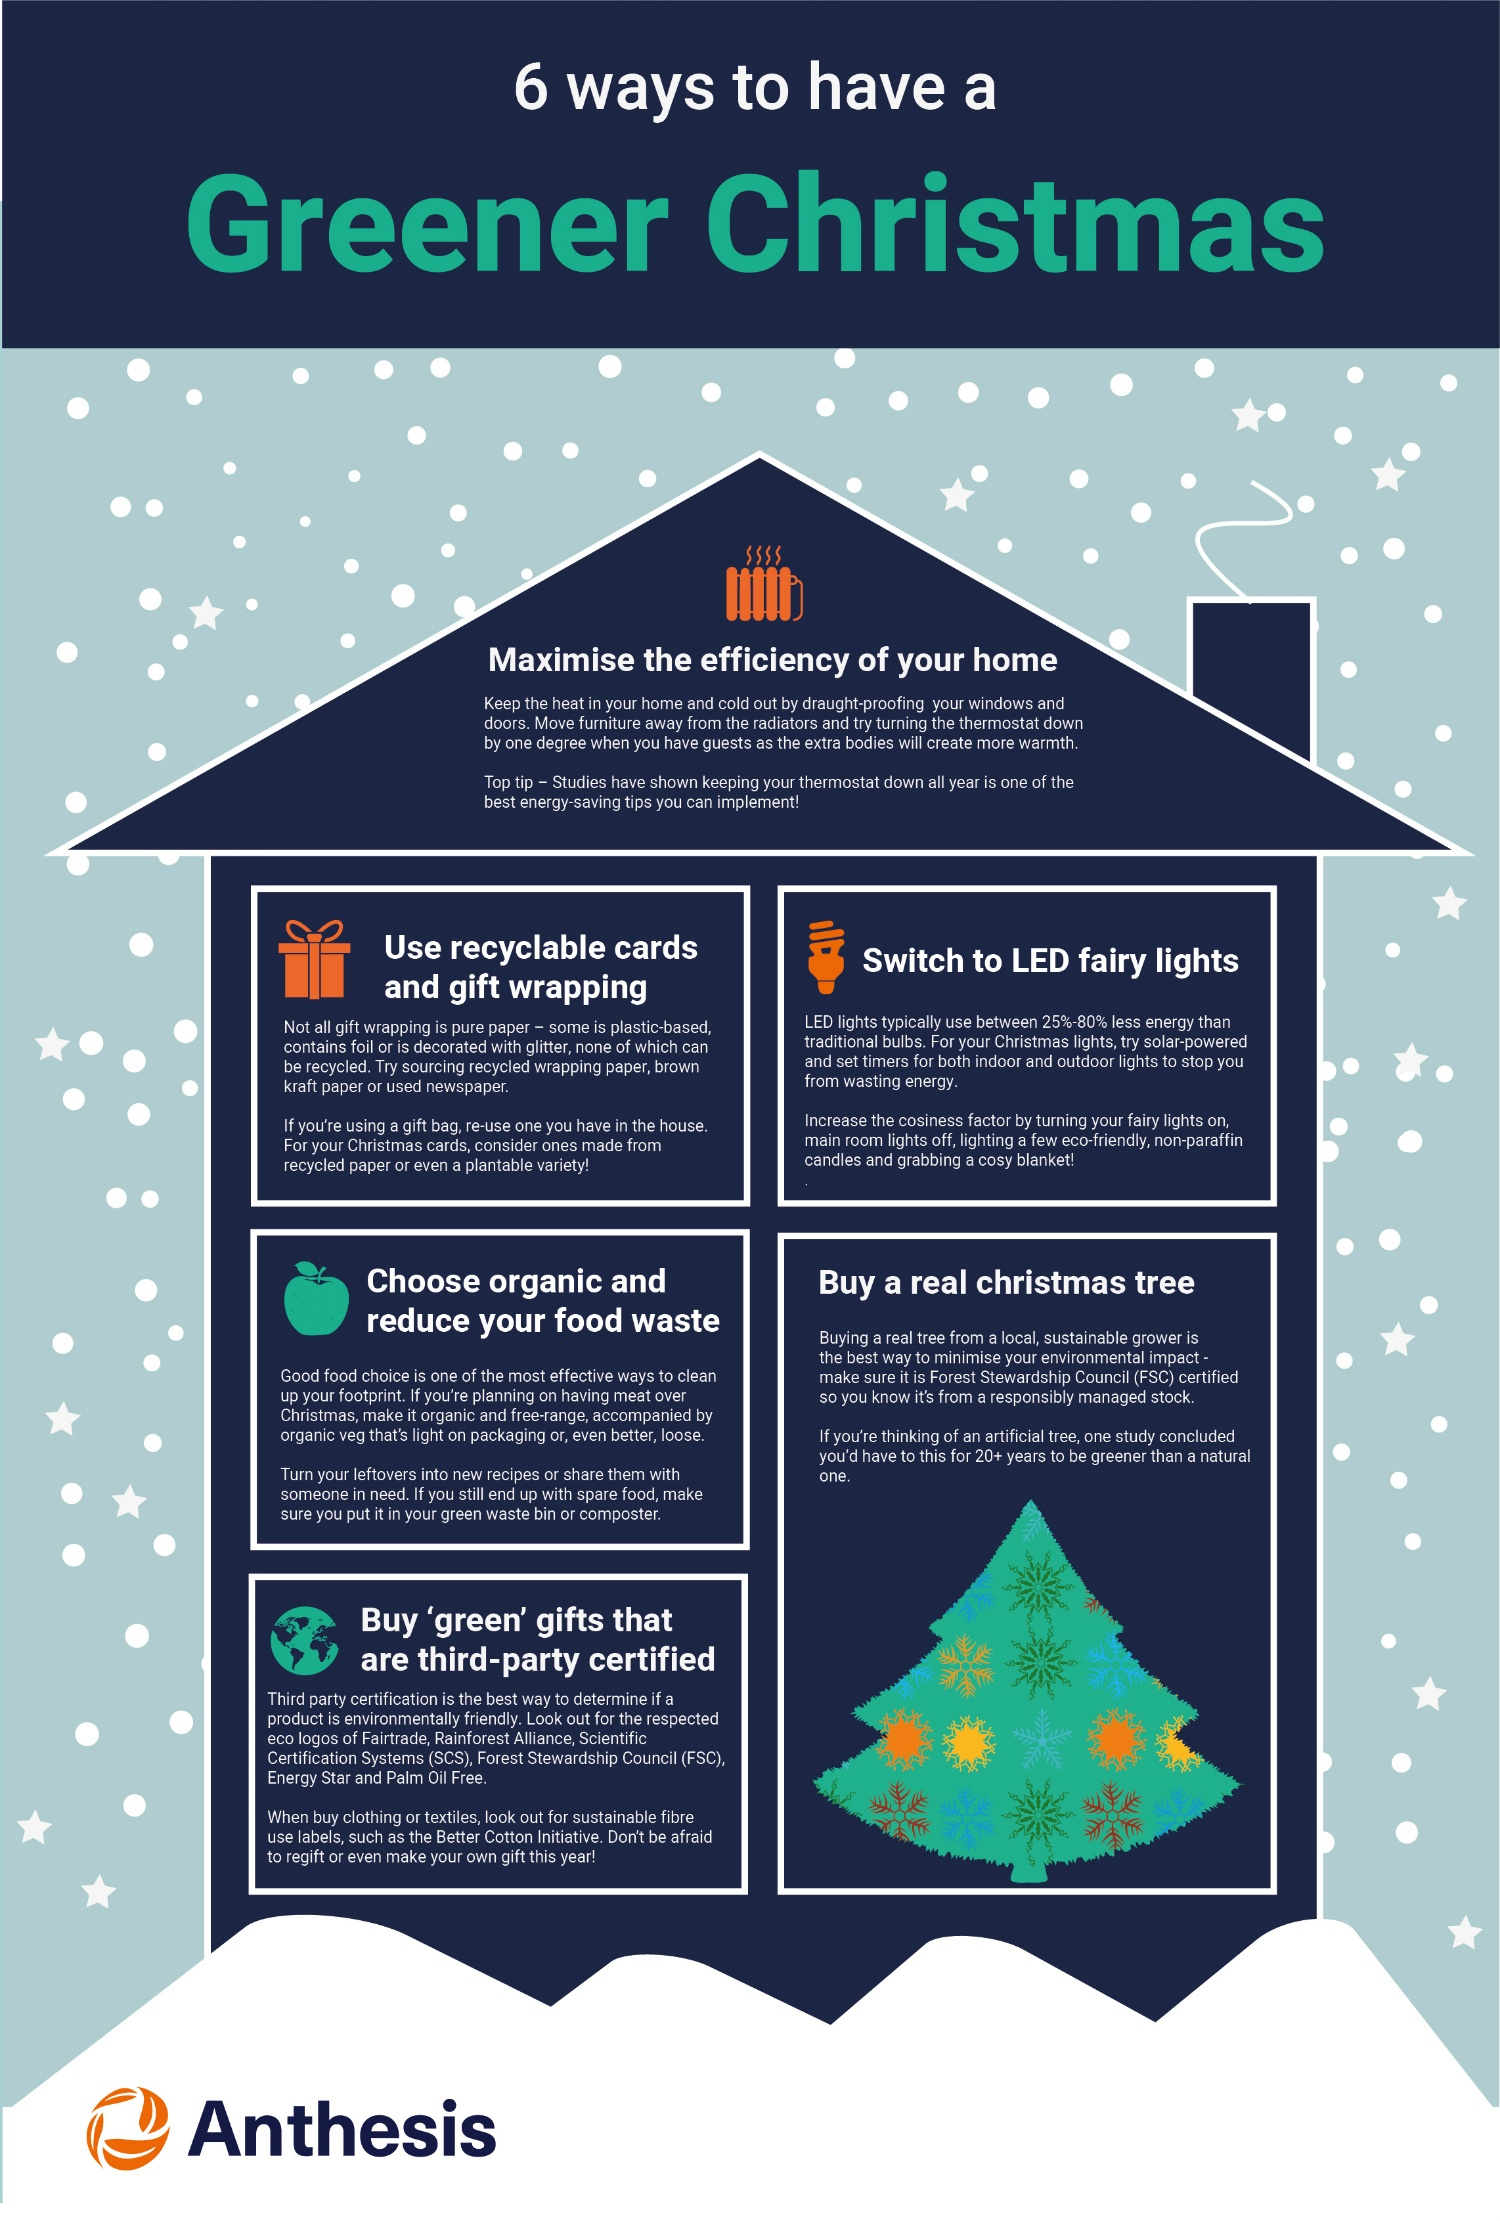 6 ways to have a Greener Christmas infographic - Anthesis